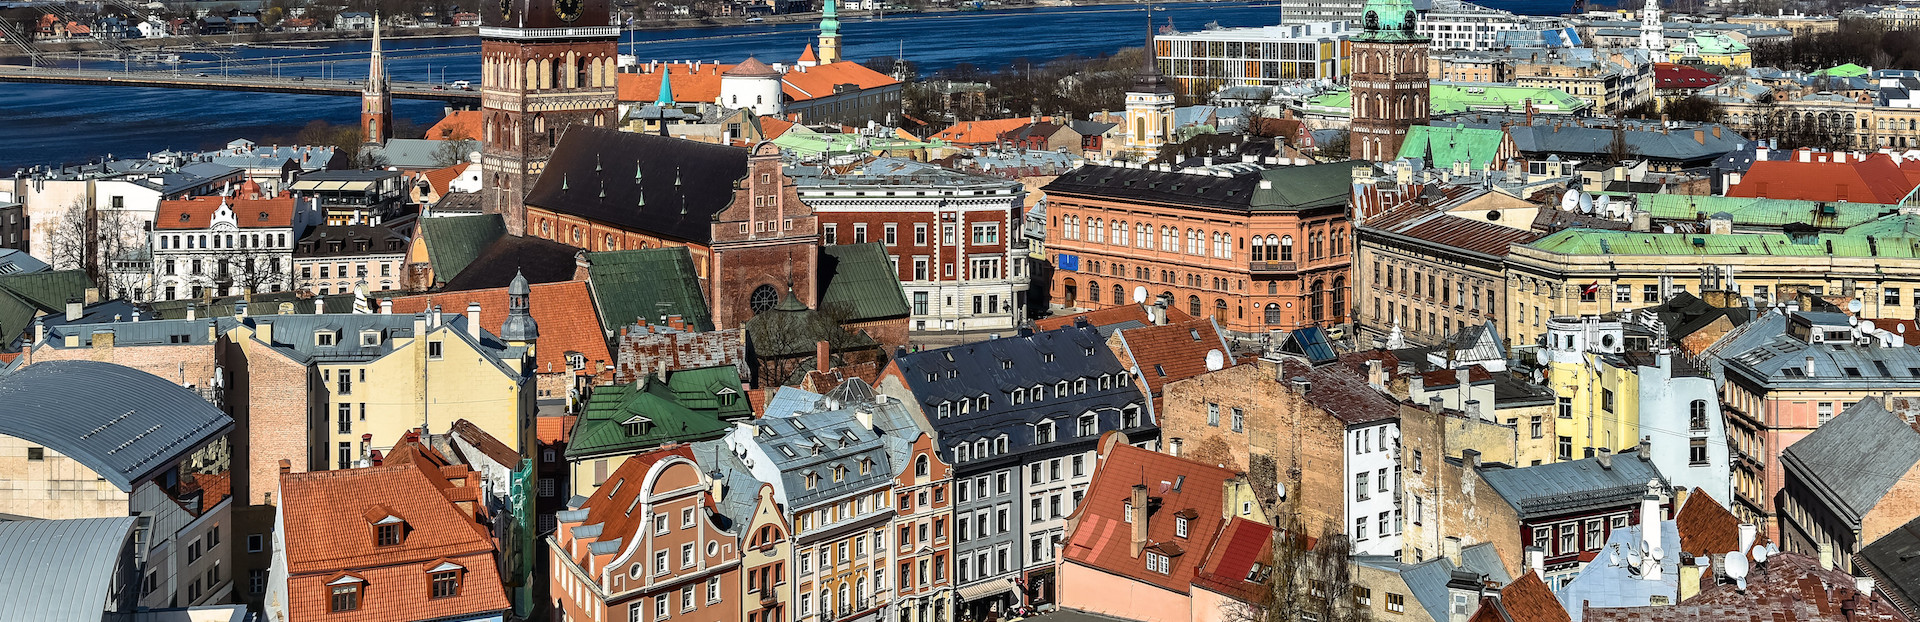 Riga audio tour: A walk through Old Riga from St Peter's Church to the Monument of Freedom